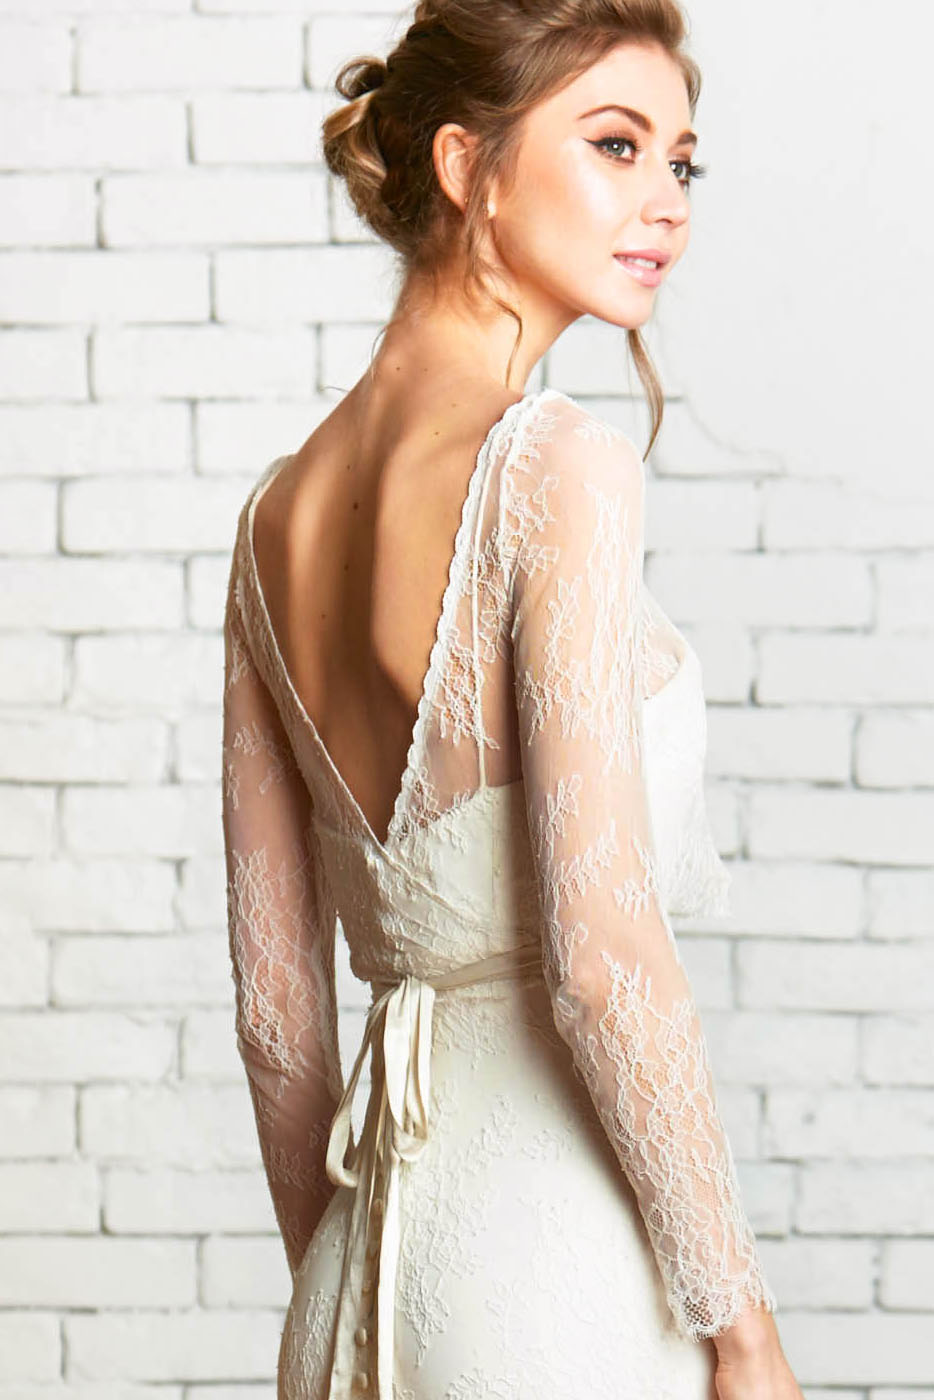 BrookeTop-Back-Ballet_Wrap_Long_Sleeve_Lace_Wedding_Separates.jpg